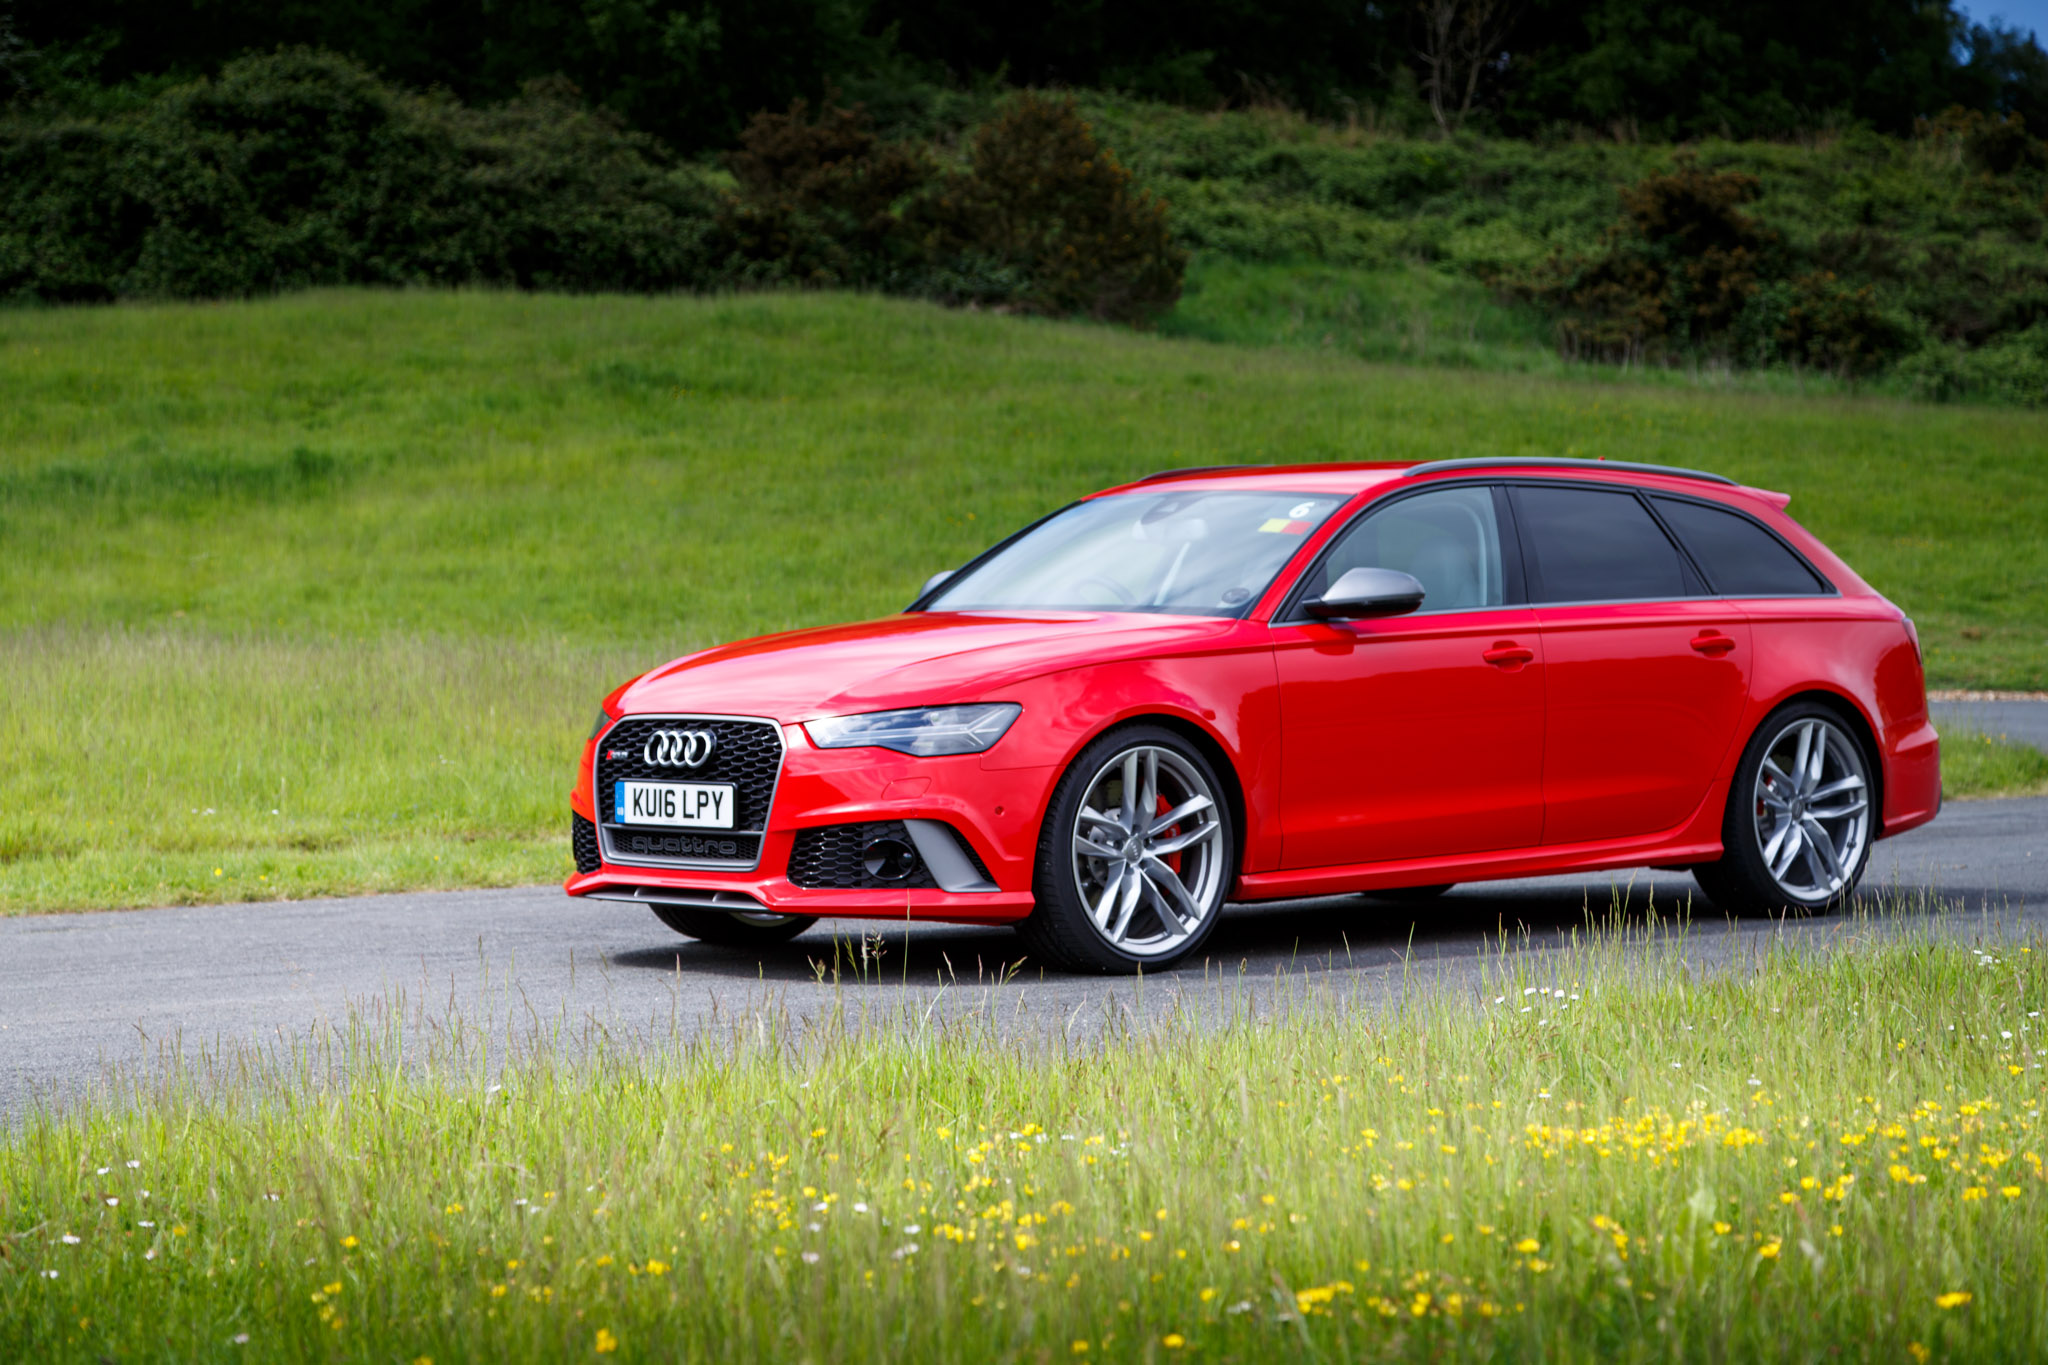 2016 audi rs6 avant gallery. Black Bedroom Furniture Sets. Home Design Ideas